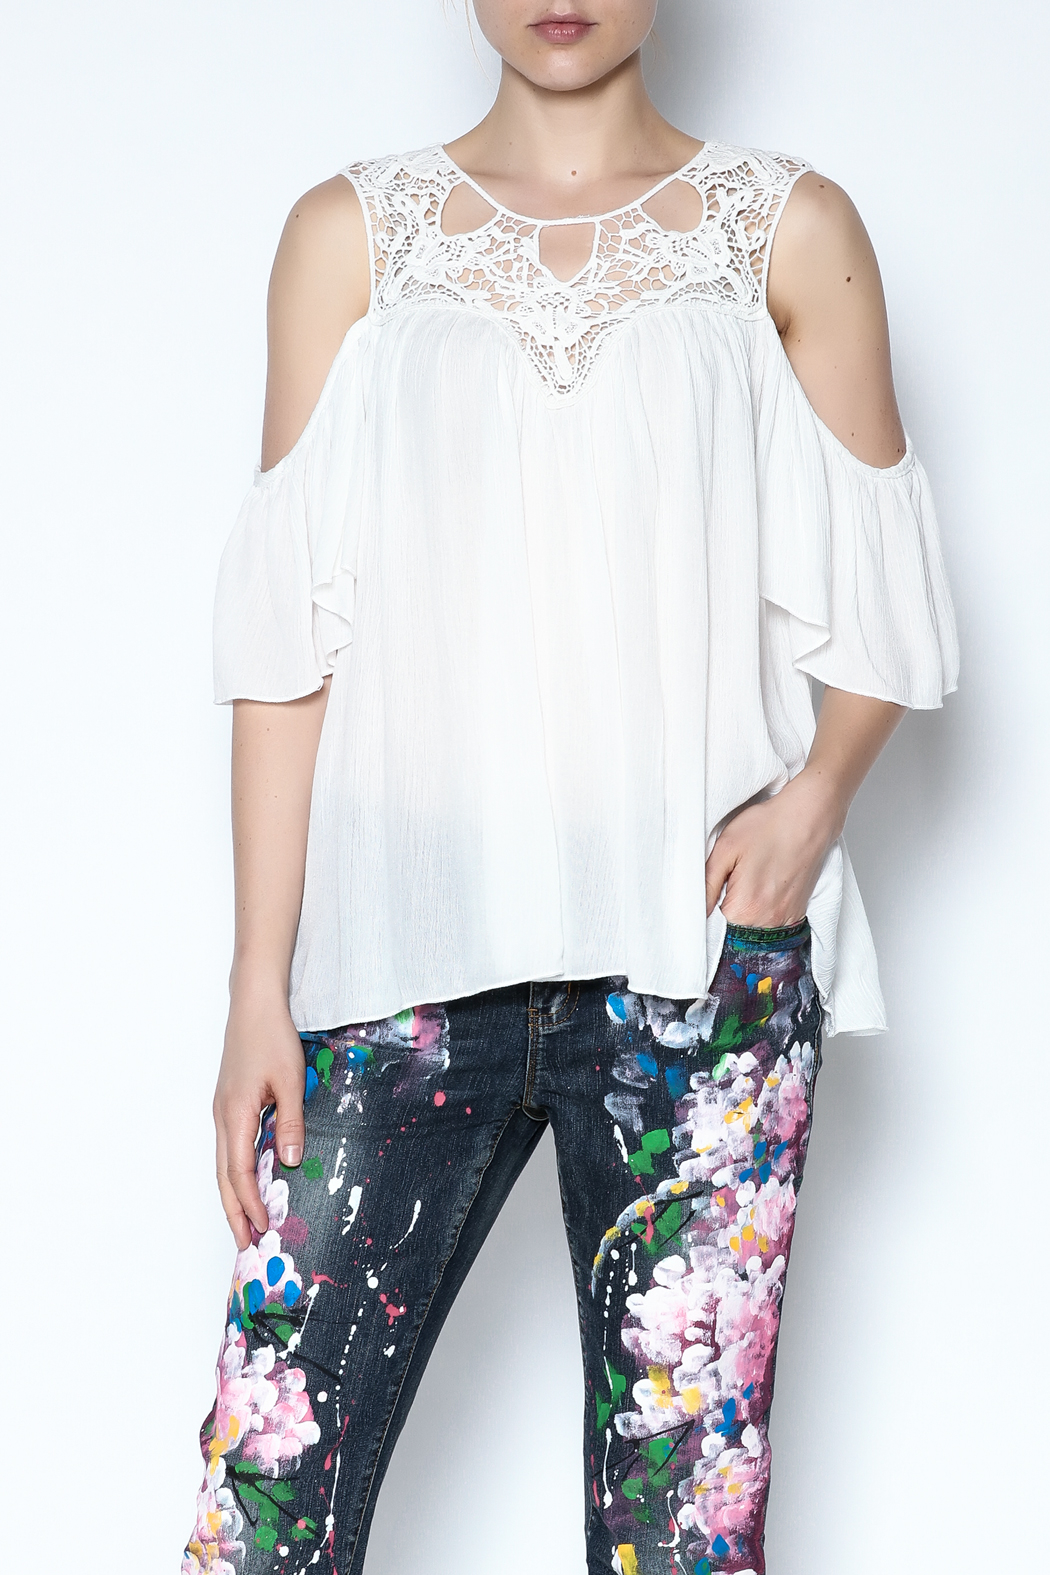 CY Fashion Crochet Lace Top - Main Image